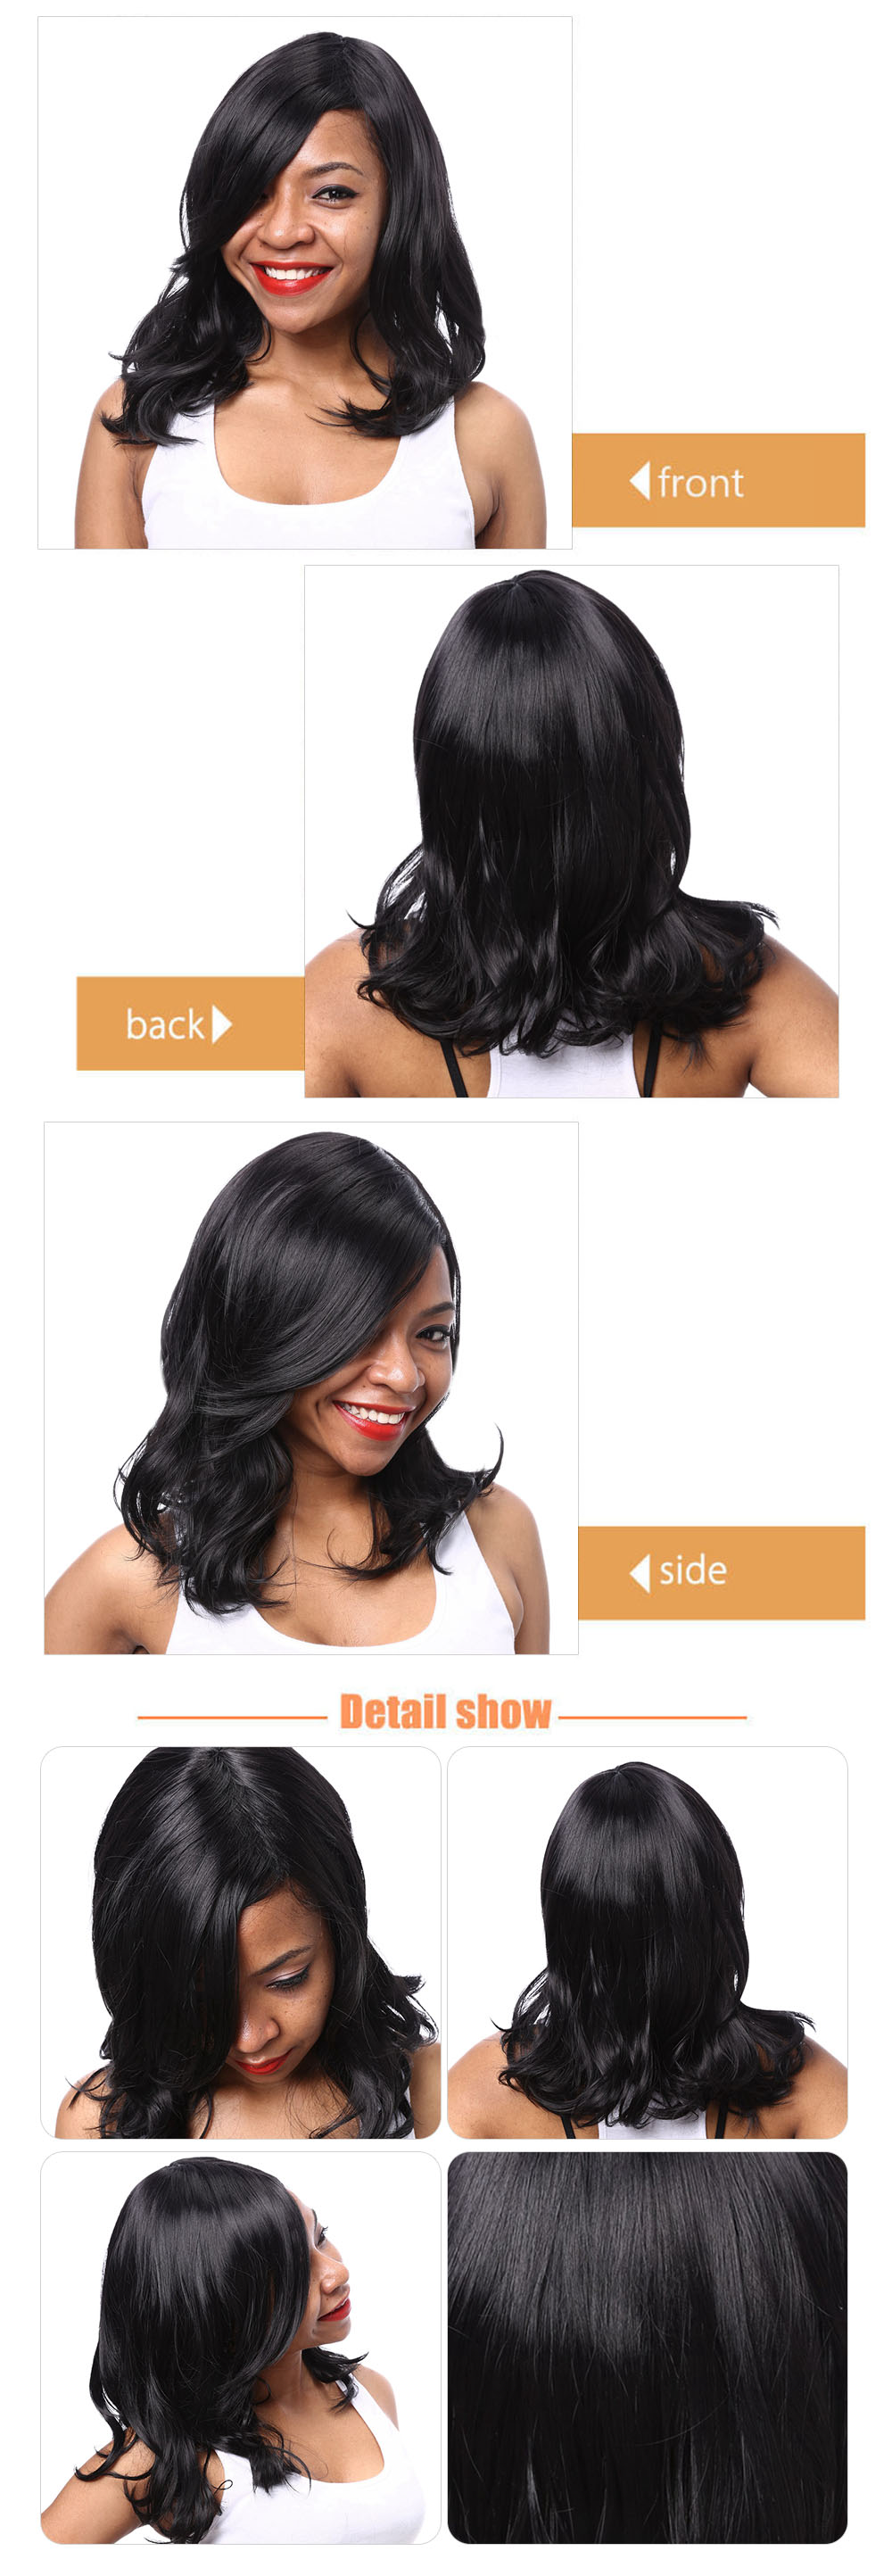 AISIHAIR Medium Lob Side Bangs Slightly Curly Synthetic Black Wigs for Women